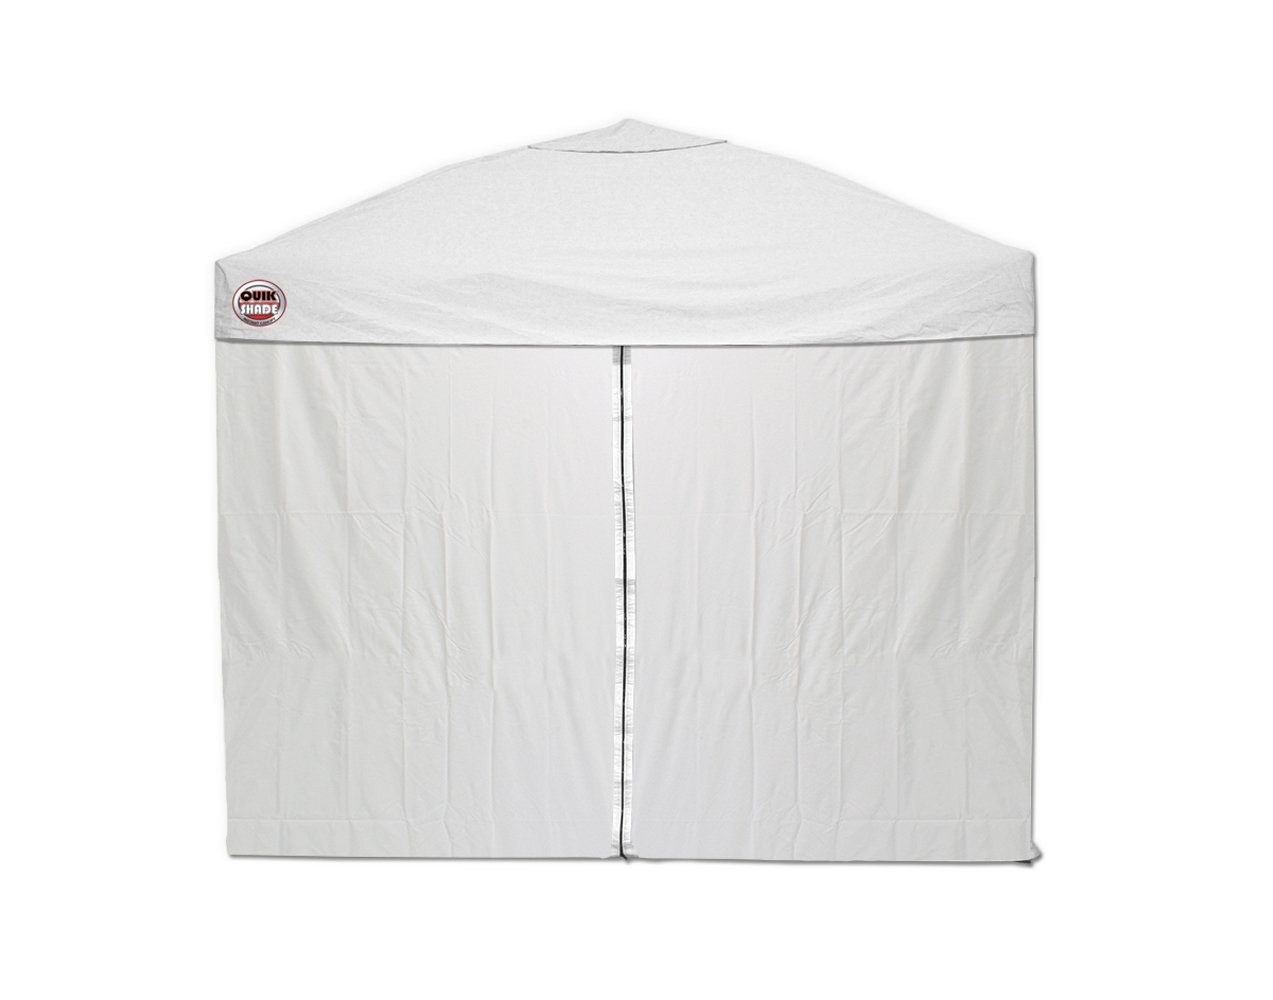 Amazon.com Quik Shade 10u0027x10u0027 Instant Canopy Wall Panel Set with Zipper Entry Sports u0026 Outdoors  sc 1 st  Amazon.com & Amazon.com: Quik Shade 10u0027x10u0027 Instant Canopy Wall Panel Set with ...